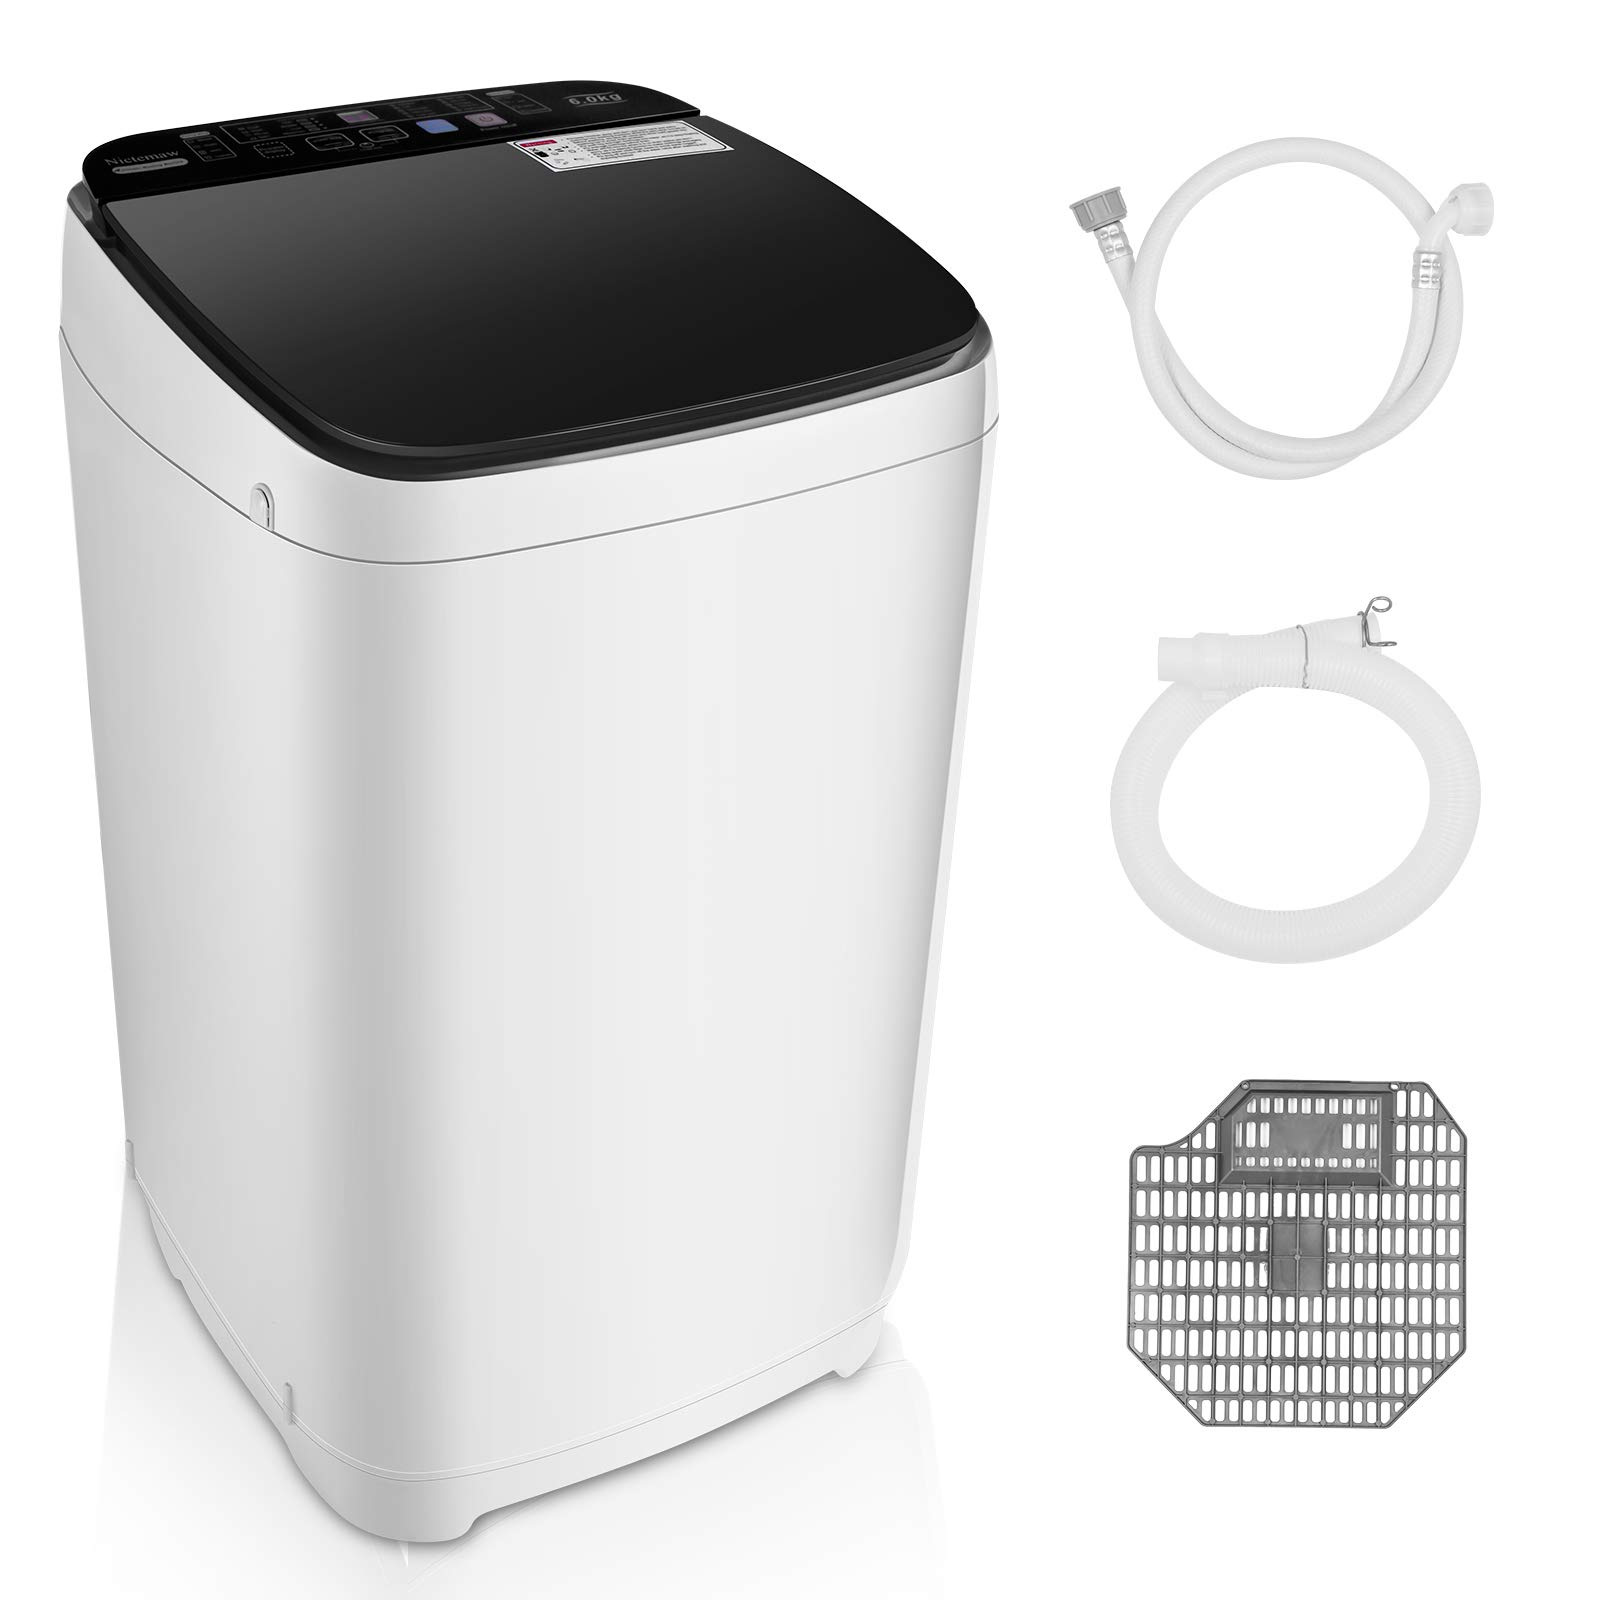 Full-Automatic Portable Washing Machine, 13.5lbs Compact Laundry Washer Machine with 10 programs & 8 Water Level Selections for Dorm, Apartments, RVs, Camping